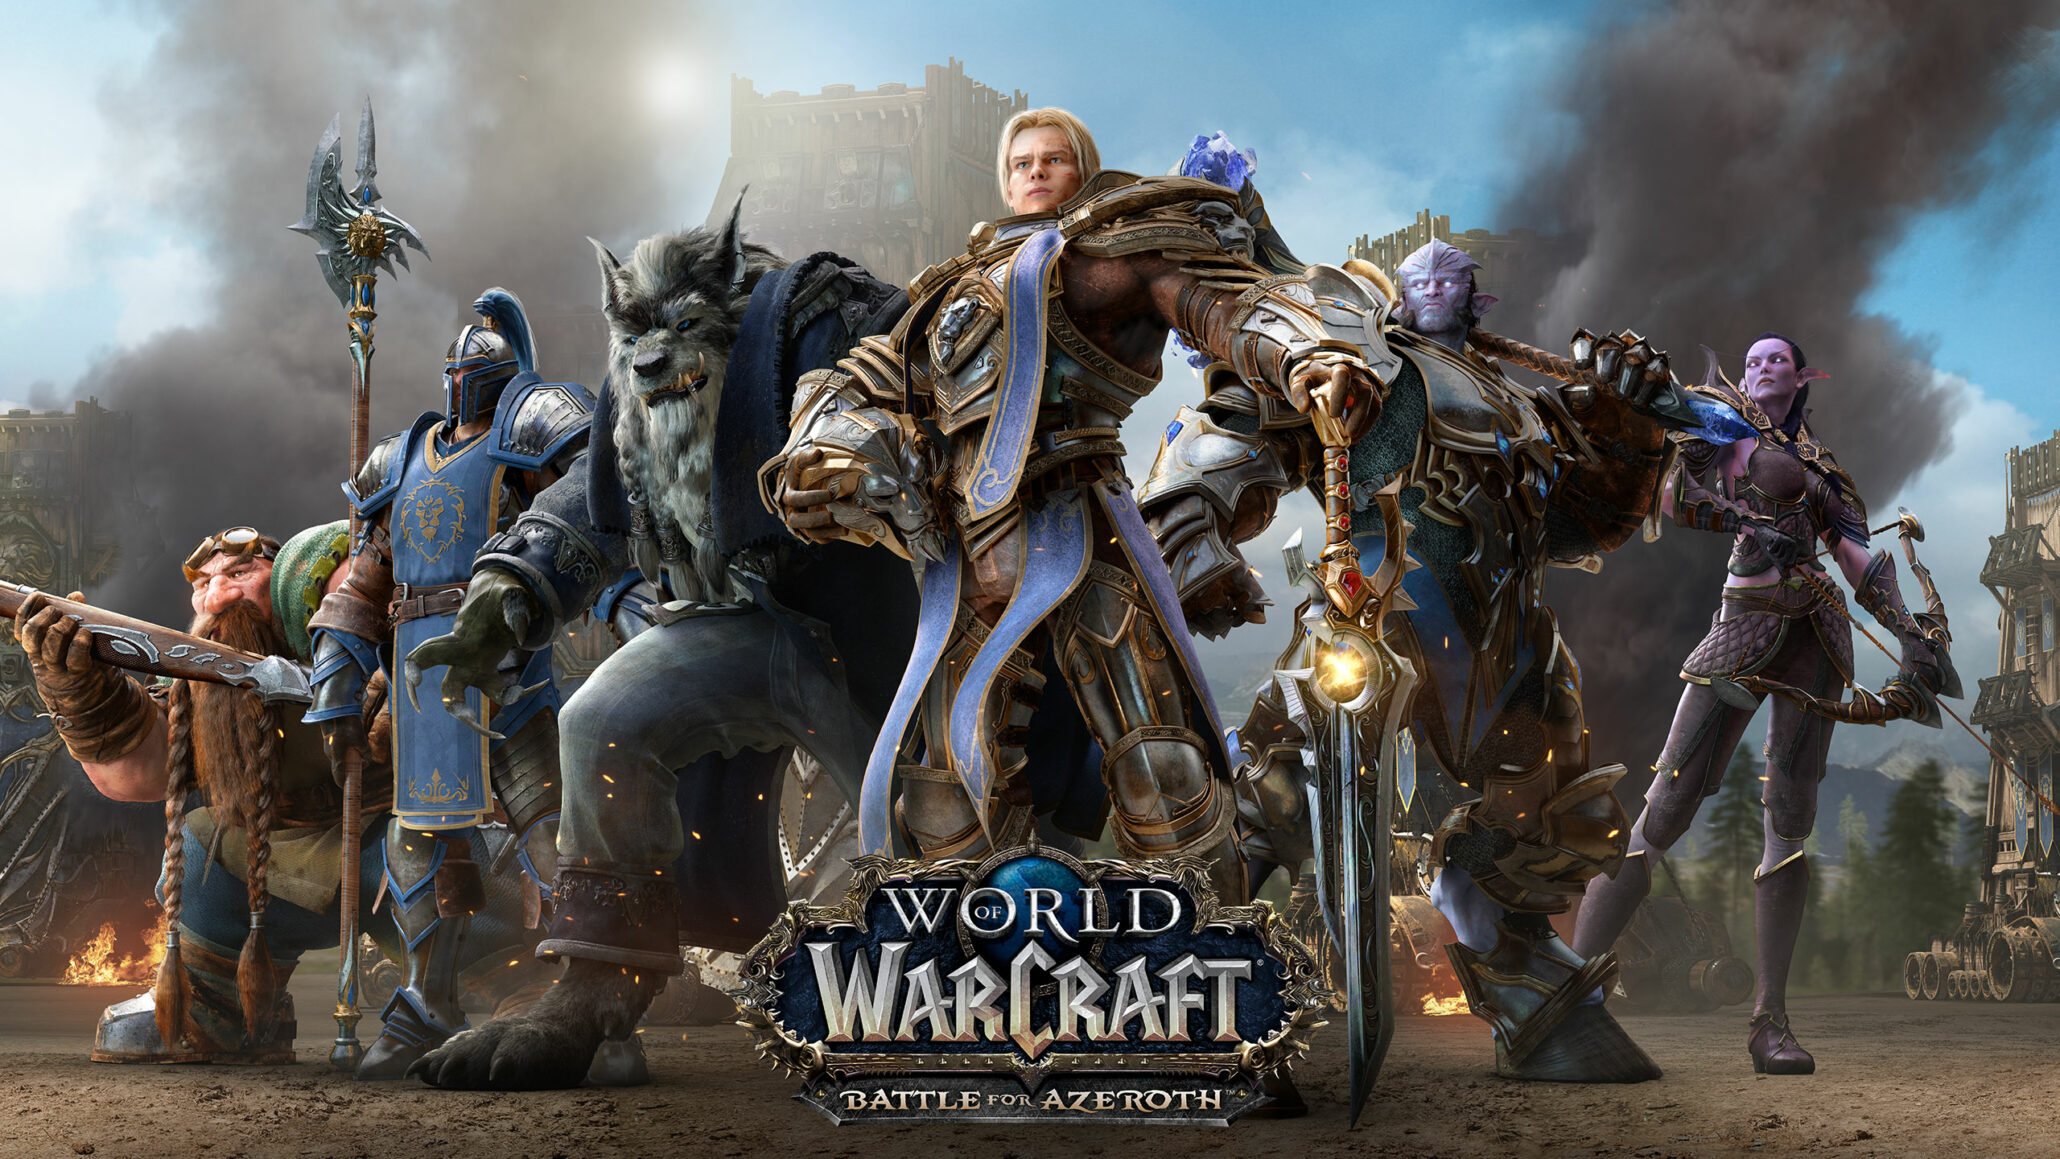 Blizzard Comments on Disabling WoW: Battle for Azeroth LFG